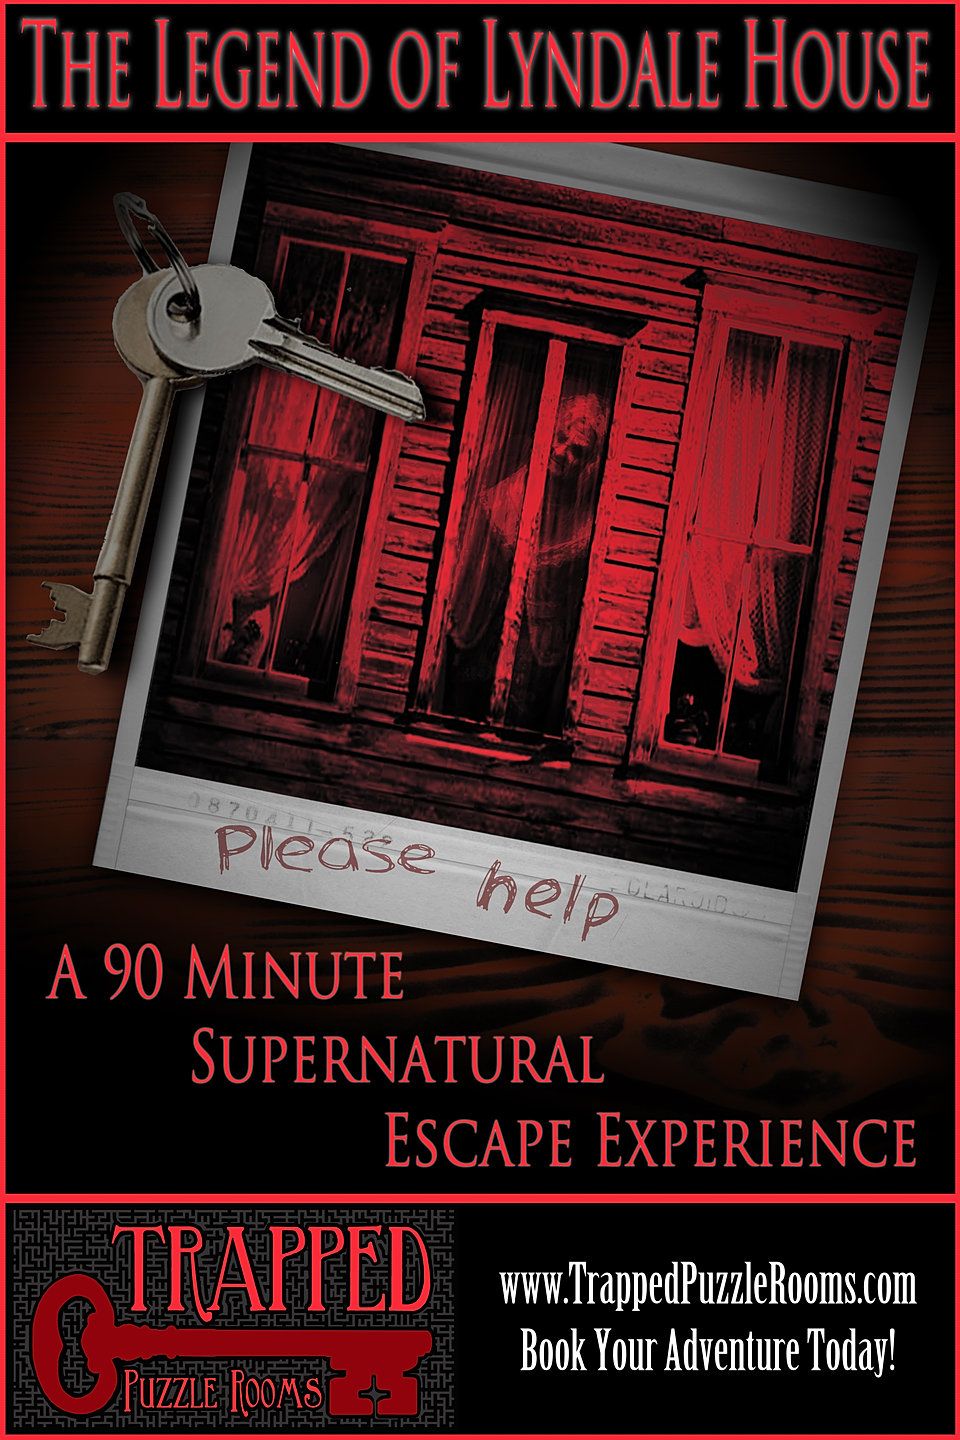 trapped puzzle rooms live escape experience in minneapolis mn